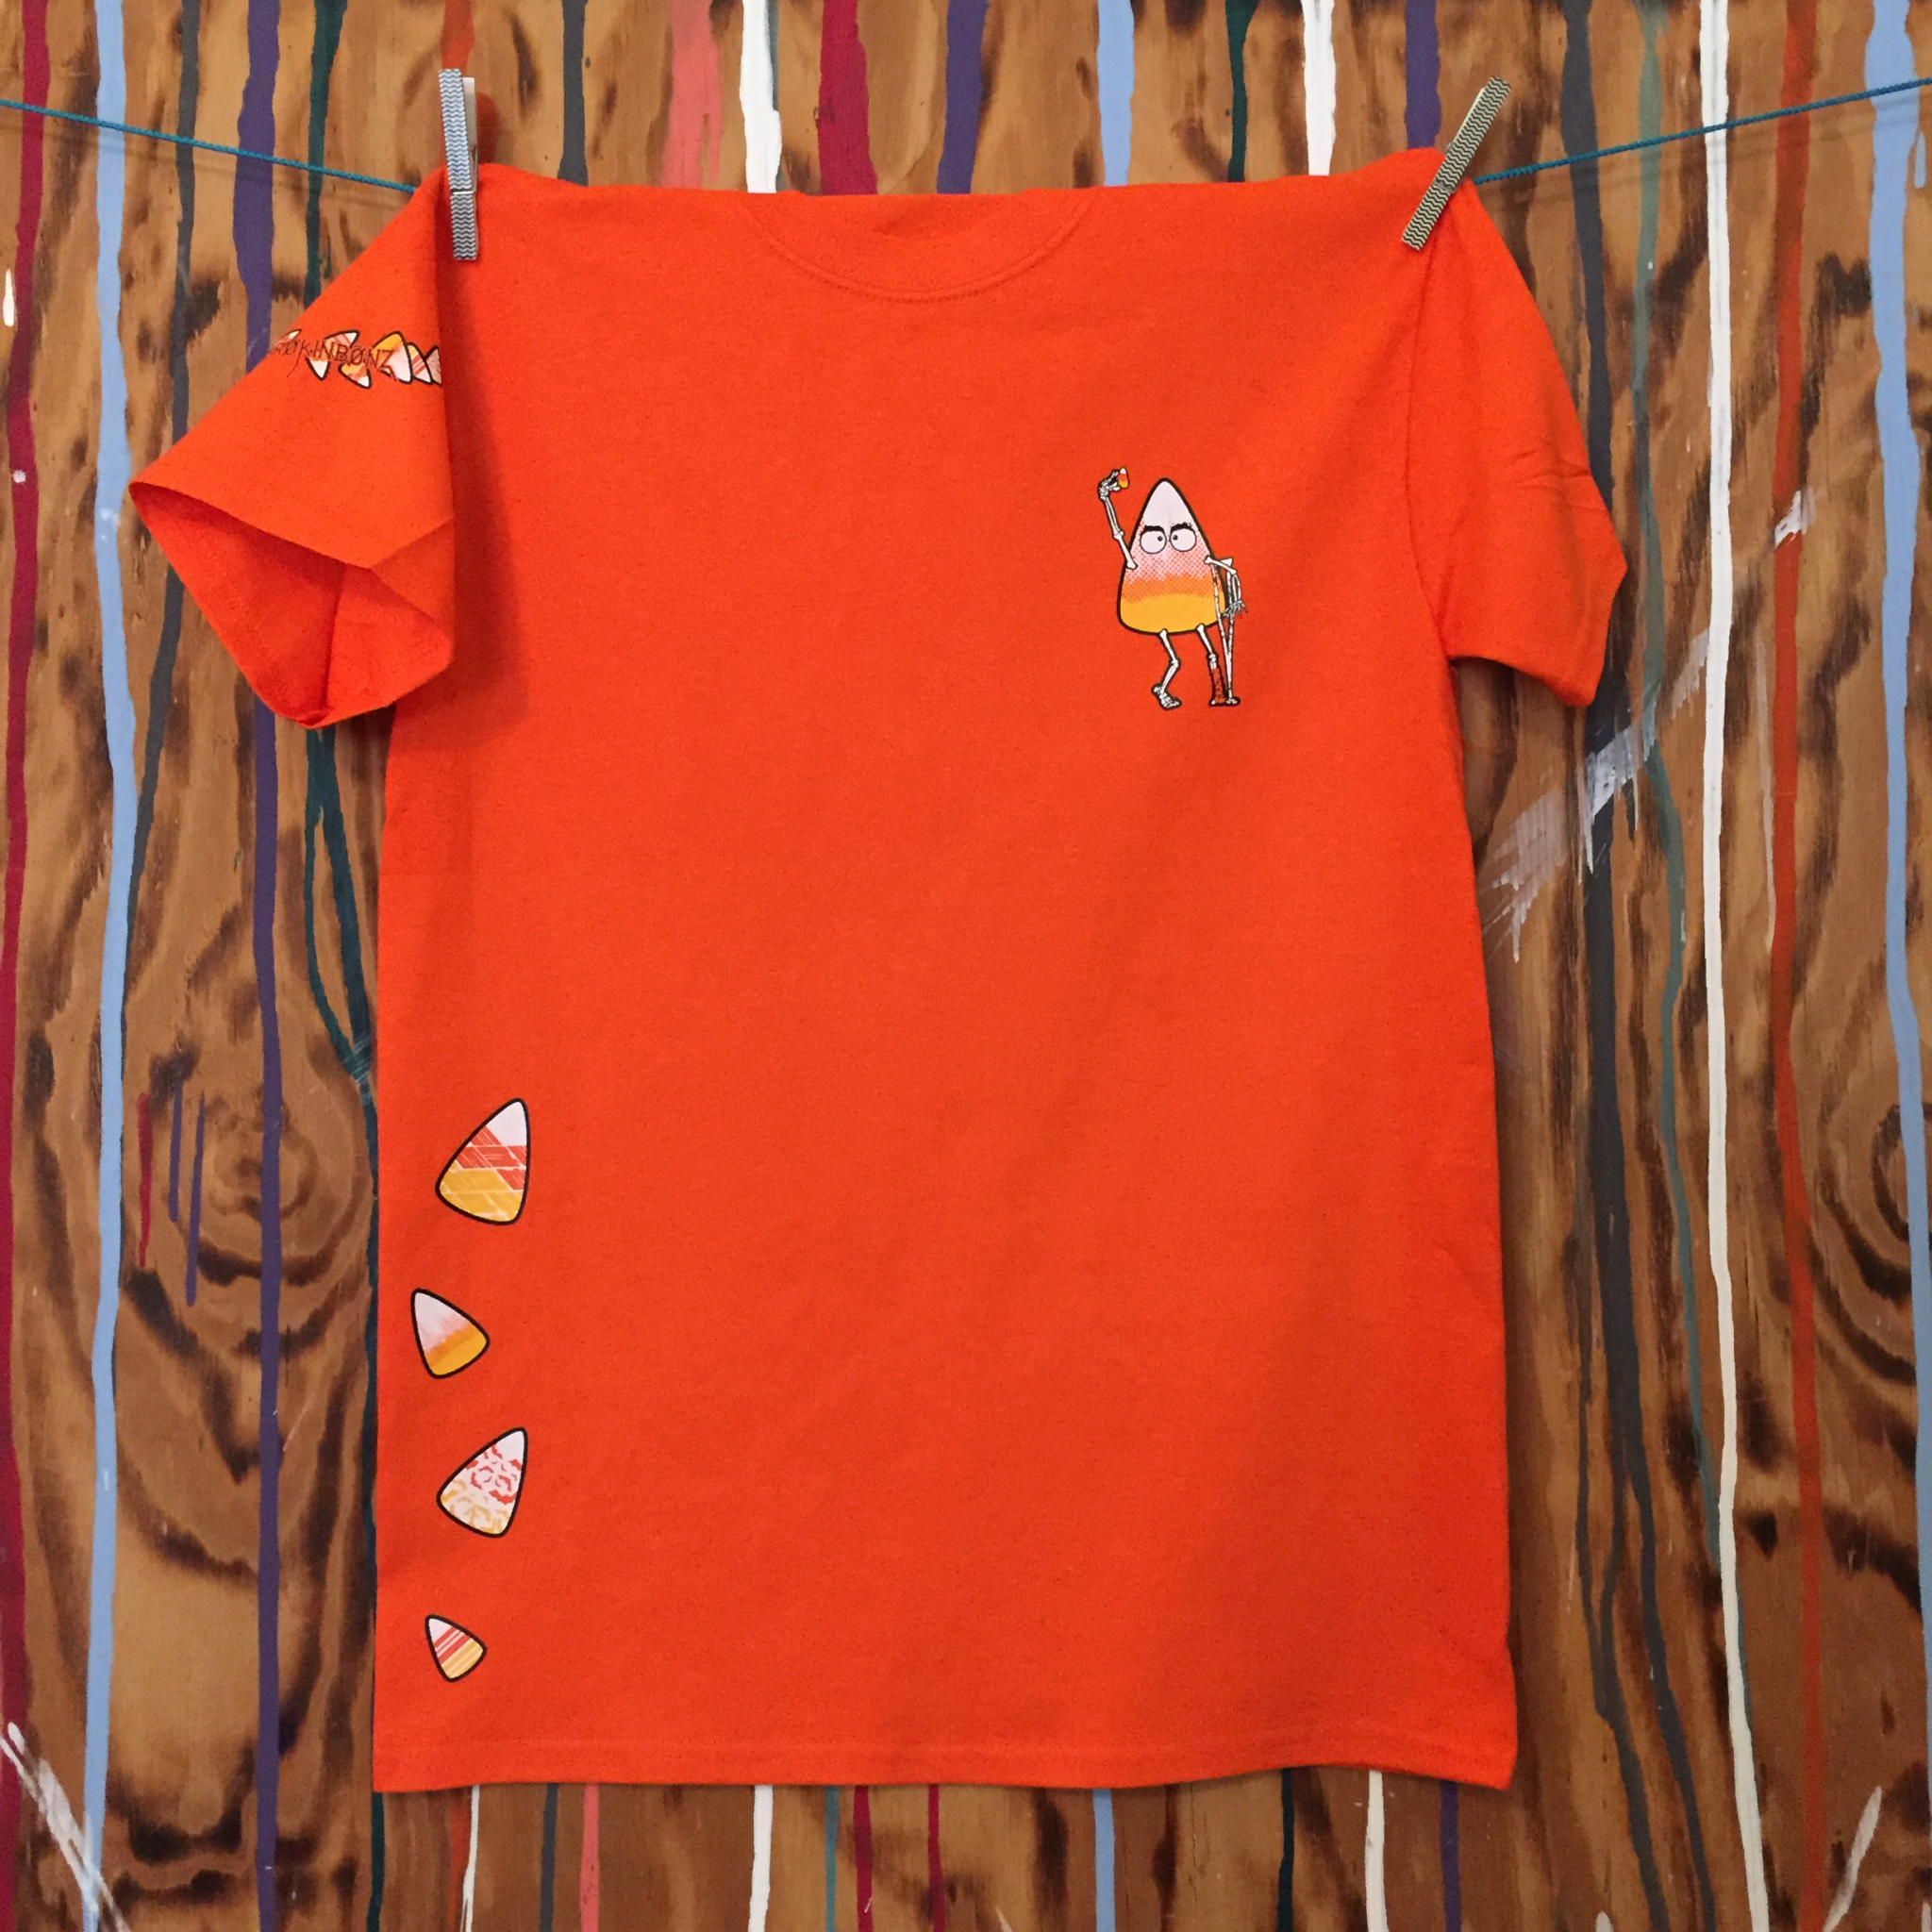 JIMMY CRACKED HIS CORN Unisex Tee...Available with custom fraction JCHCUT